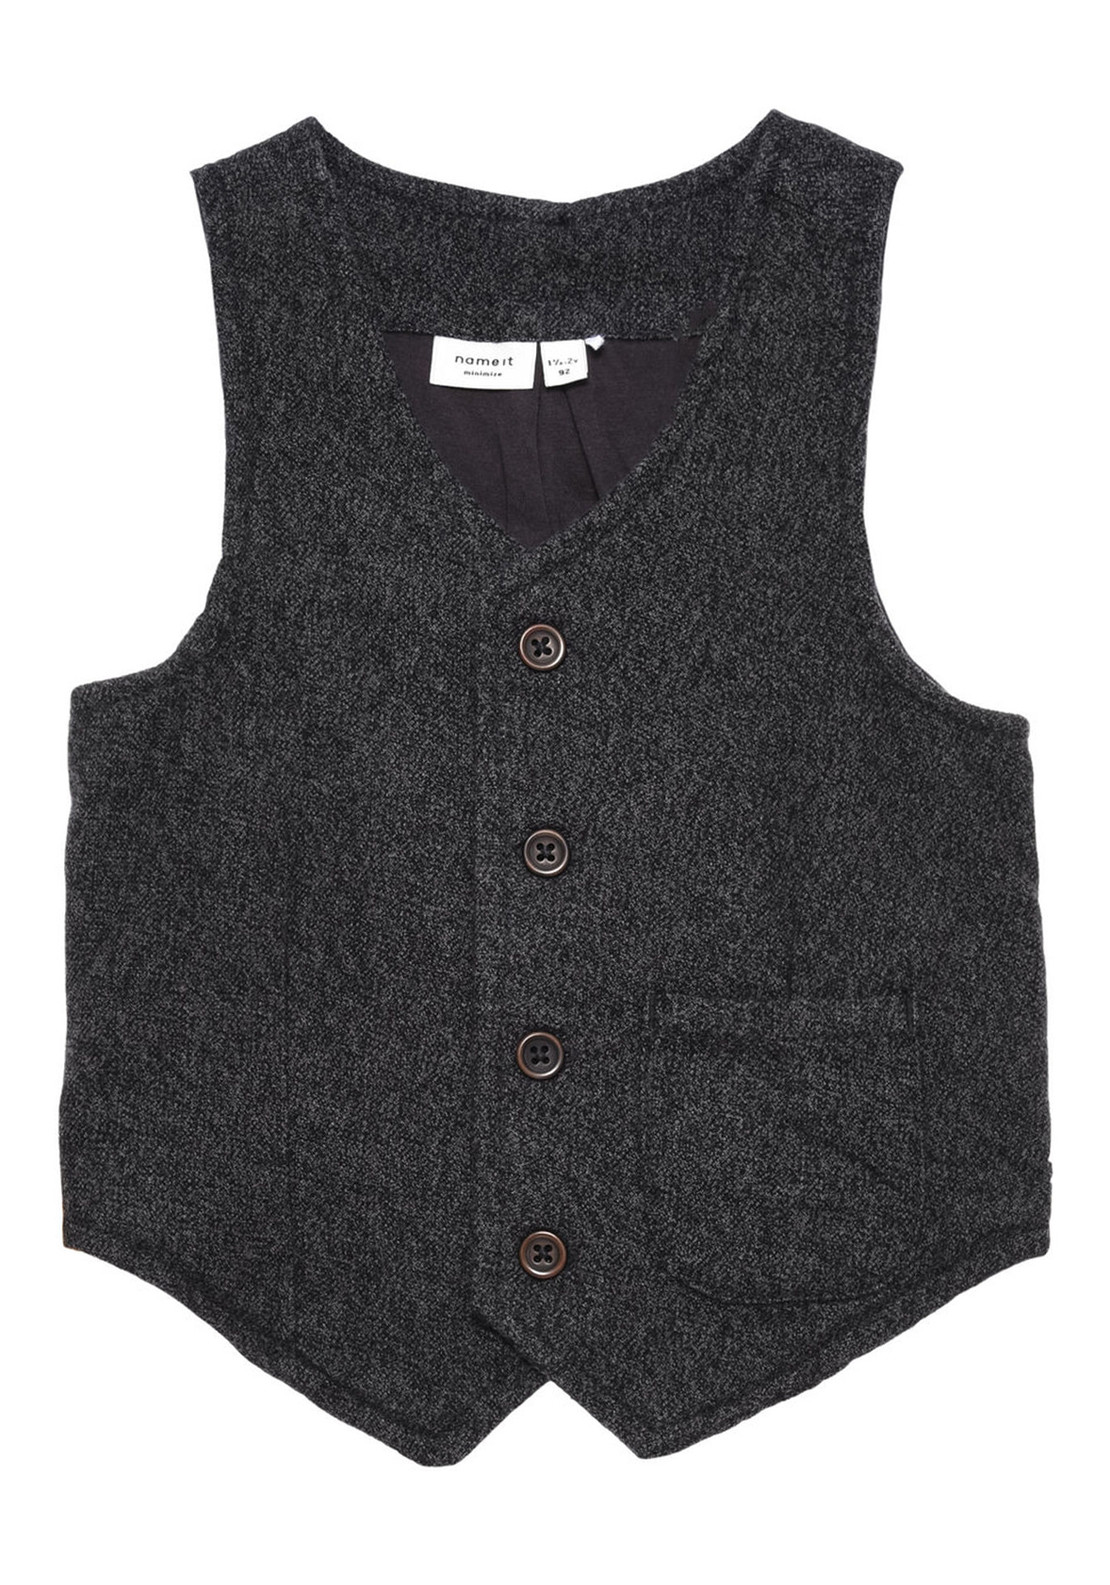 Name It Mini Boys William Waistcoat, Dark Grey